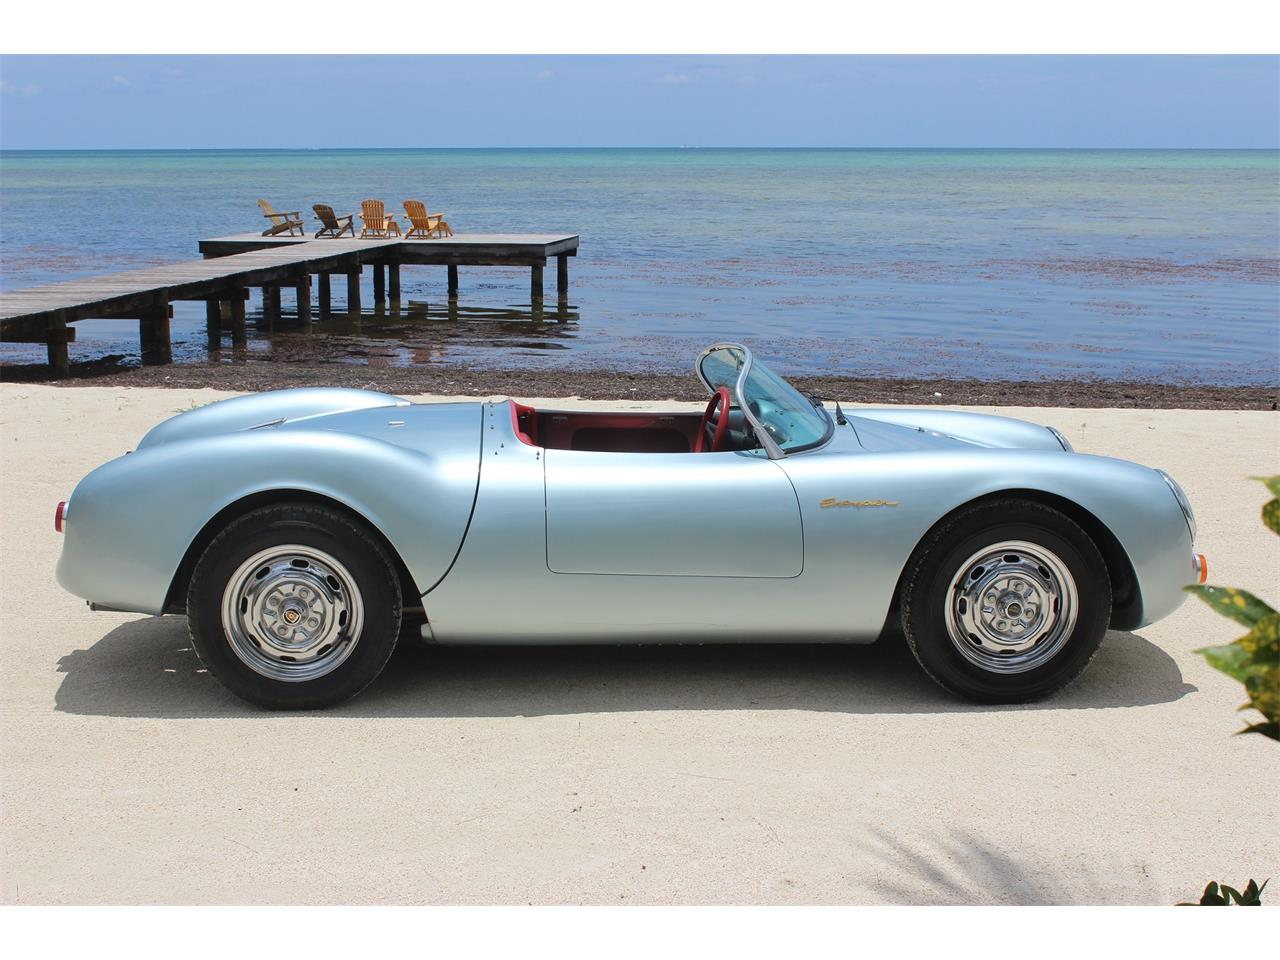 Large Picture of 1955 550 Spyder Replica located in Florida Offered by a Private Seller - FC5F